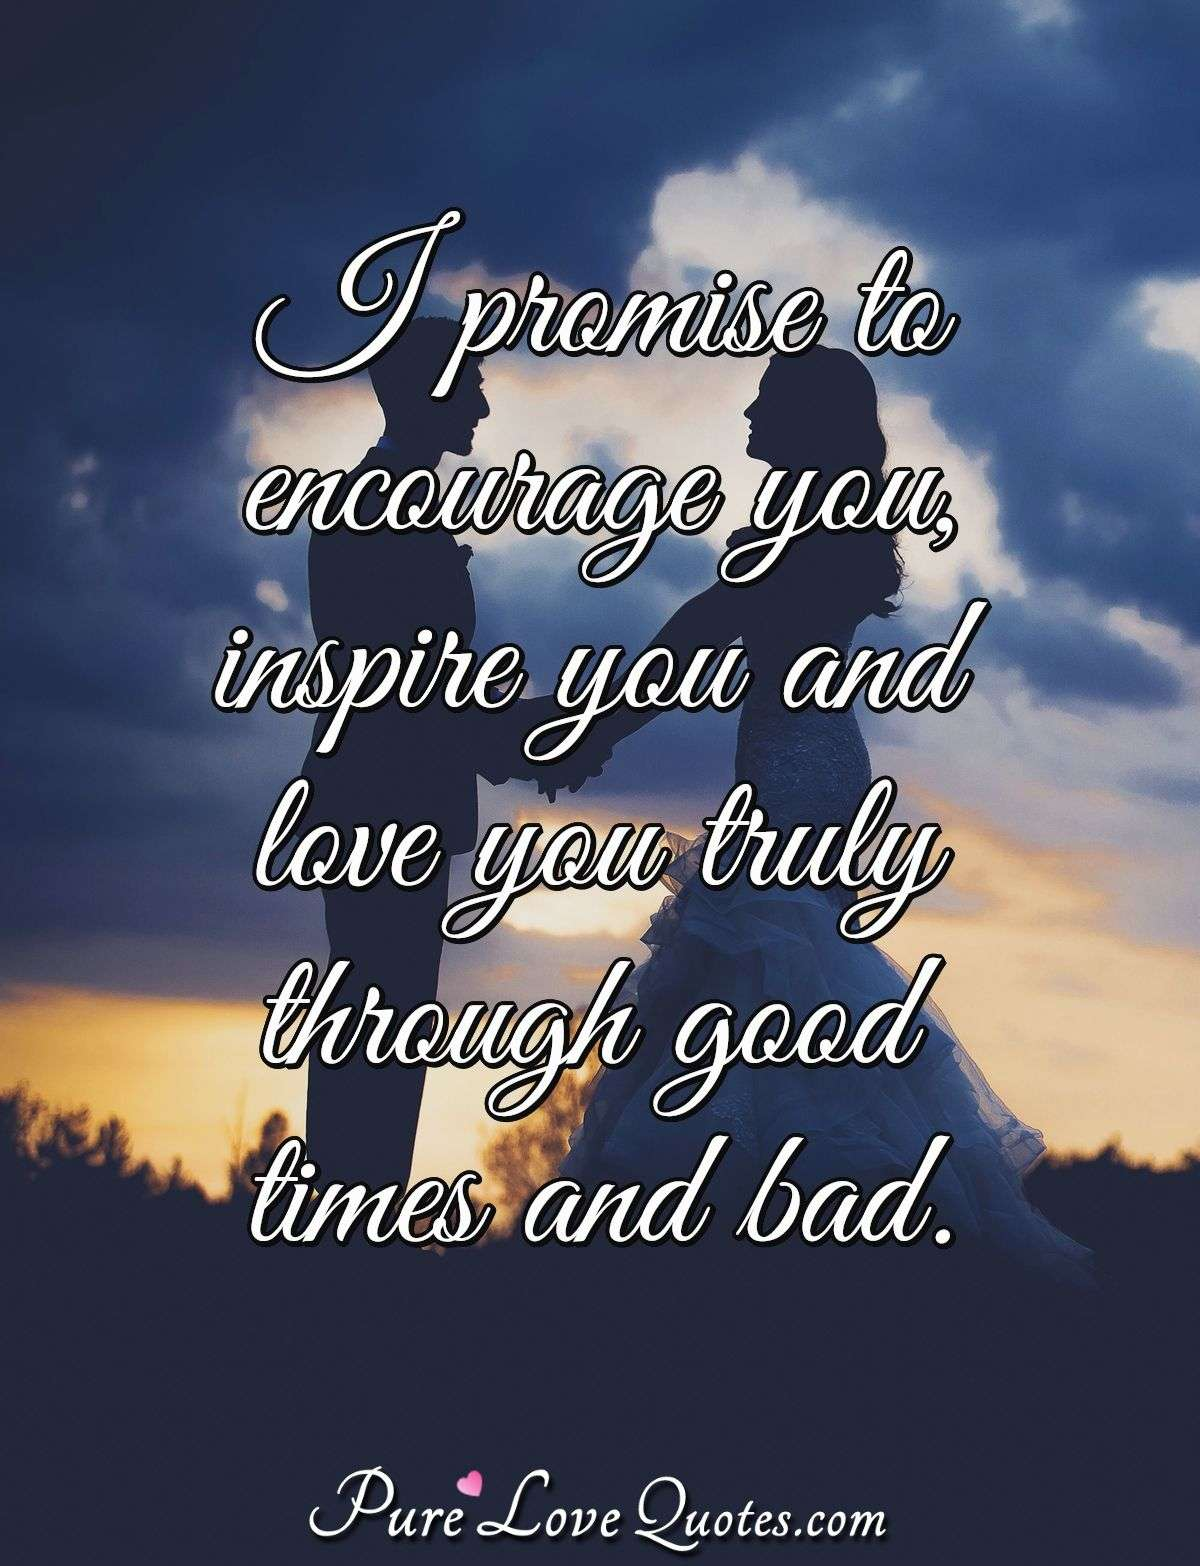 I Promise To Encourage You Inspire You And Love You Truly Through Good Times Purelovequotes